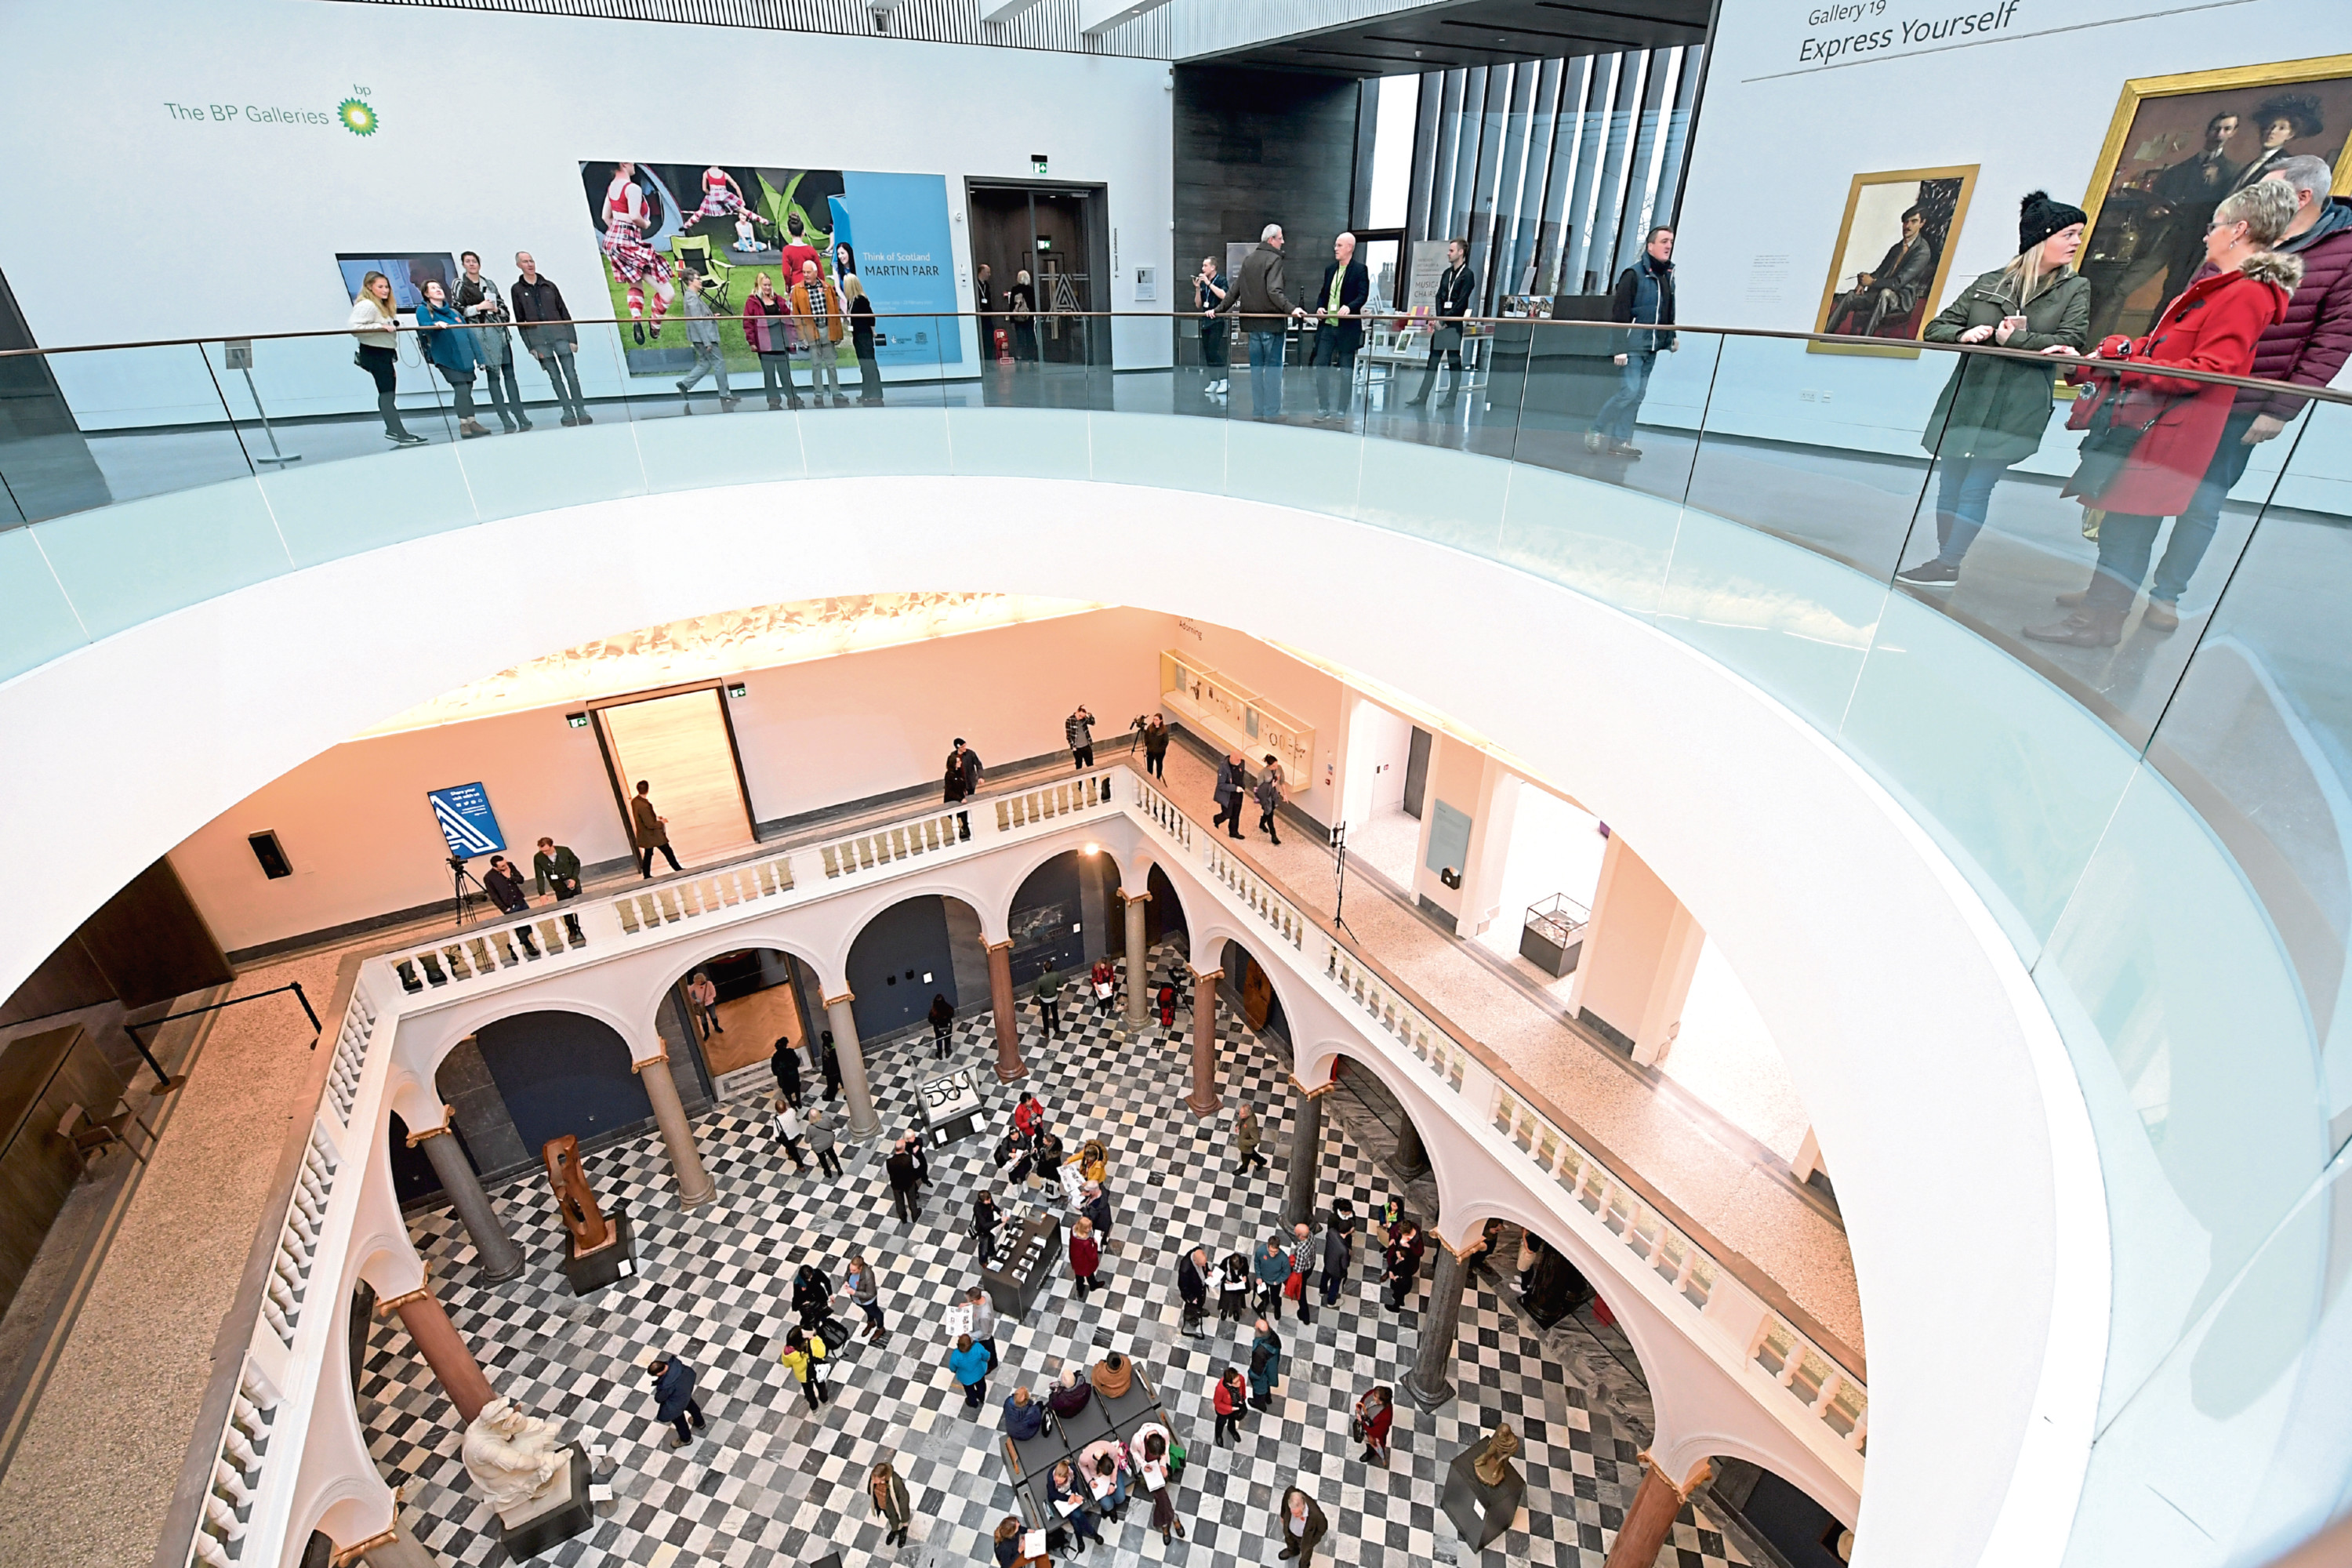 The revamped art gallery